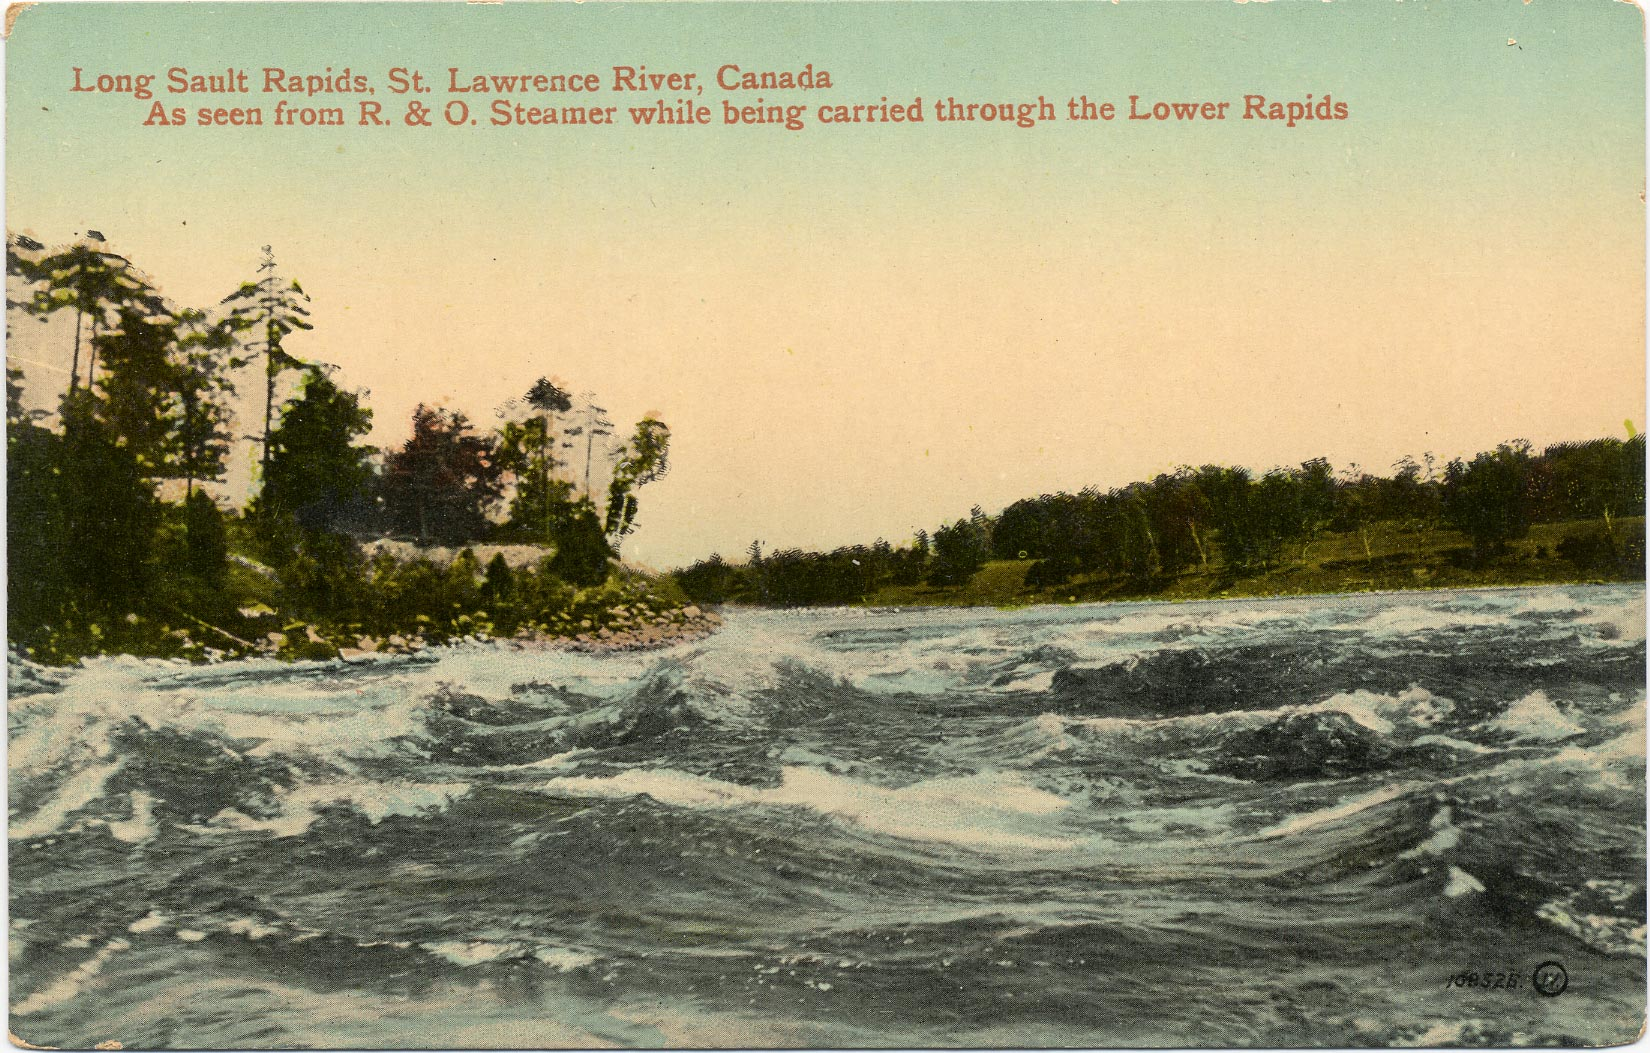 Long sault rapids st lawrence river canada as seen from r o